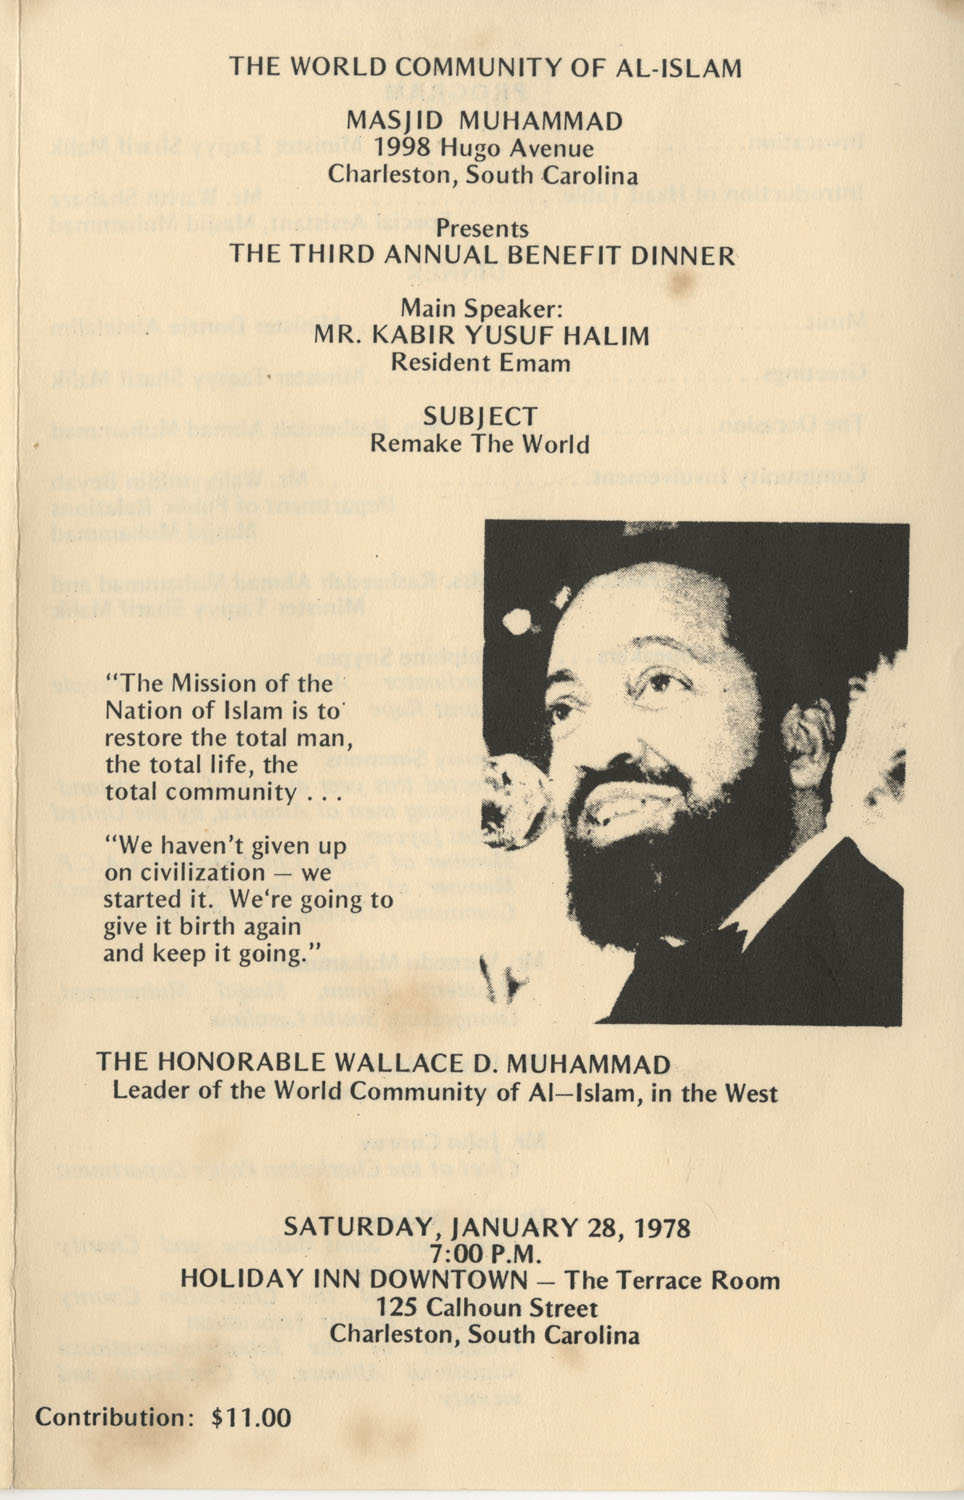 Program to the World Communist of Al-Islam's Third Annual Benefit Dinner